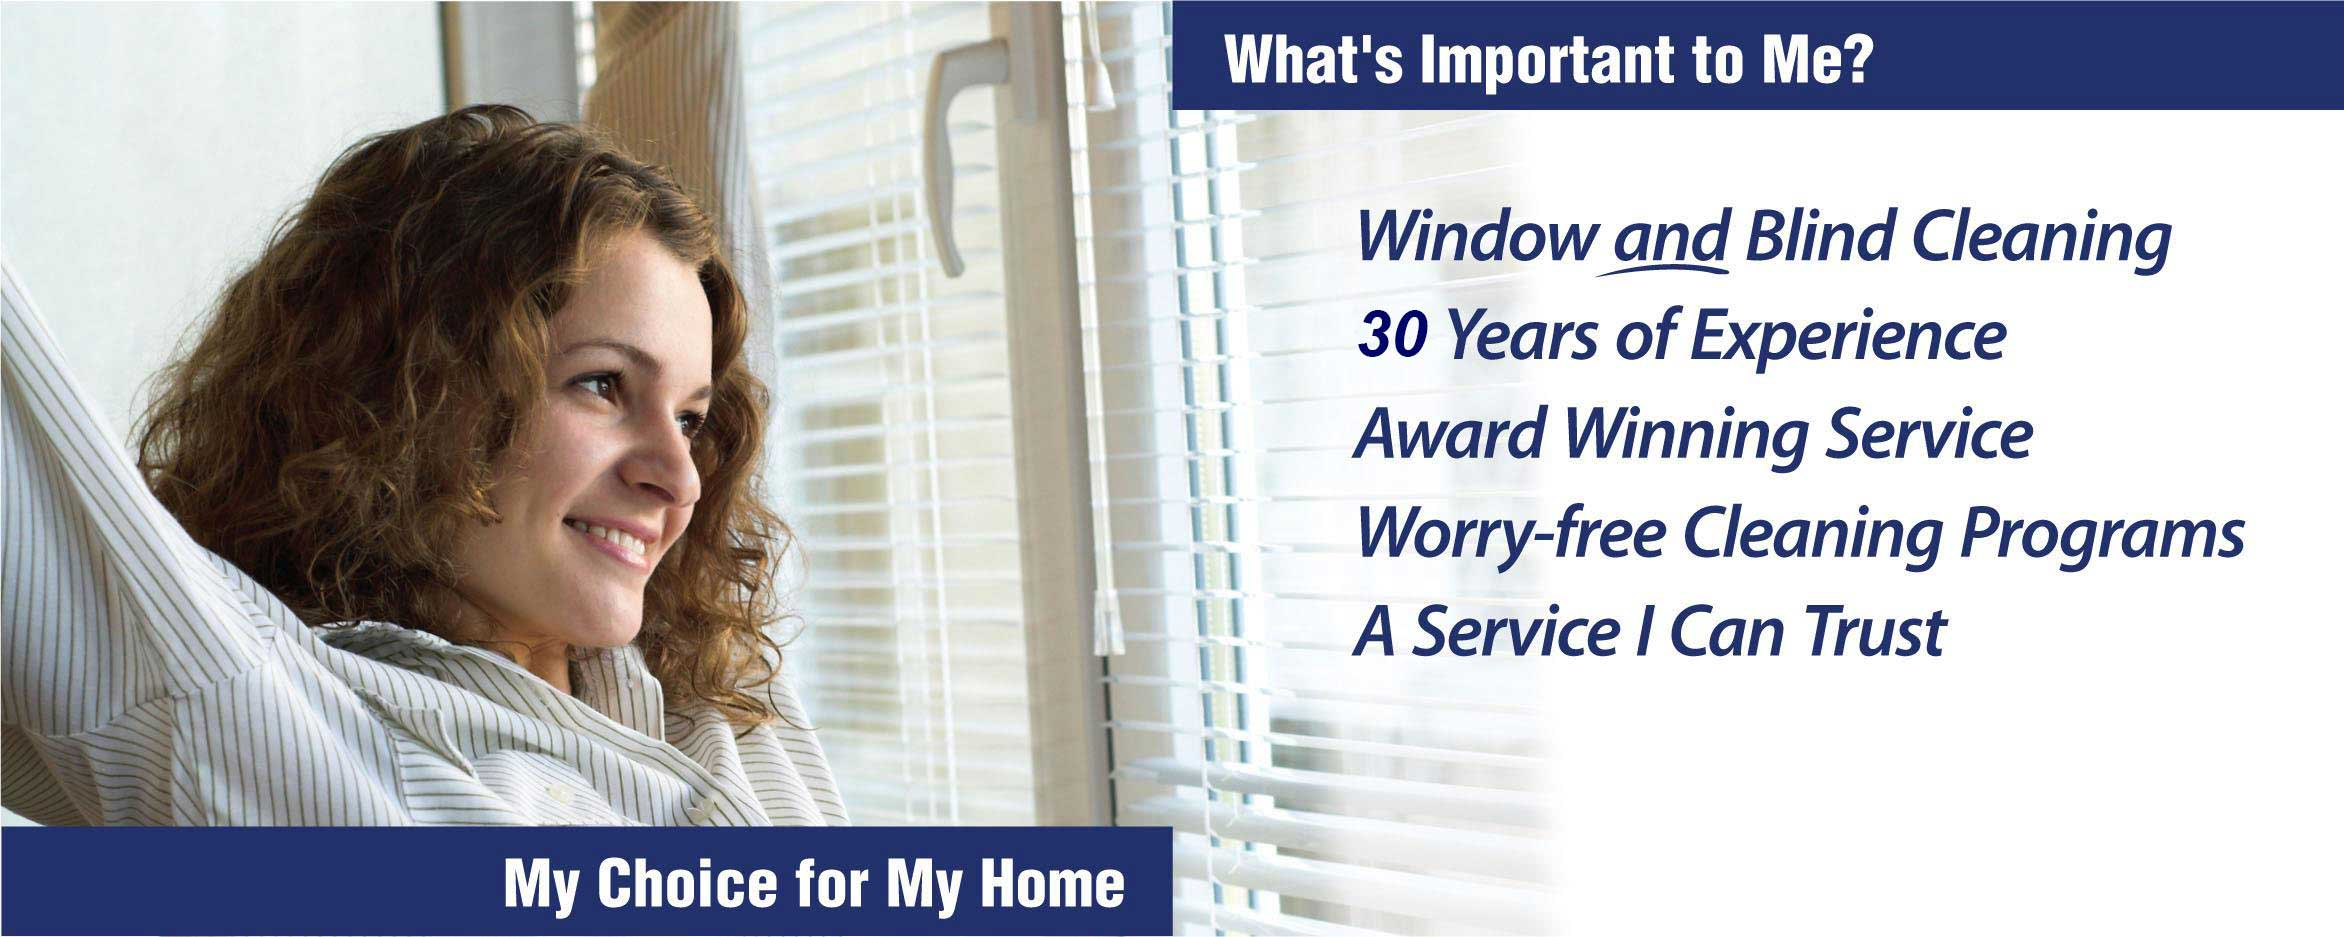 Window and Blind Cleaning